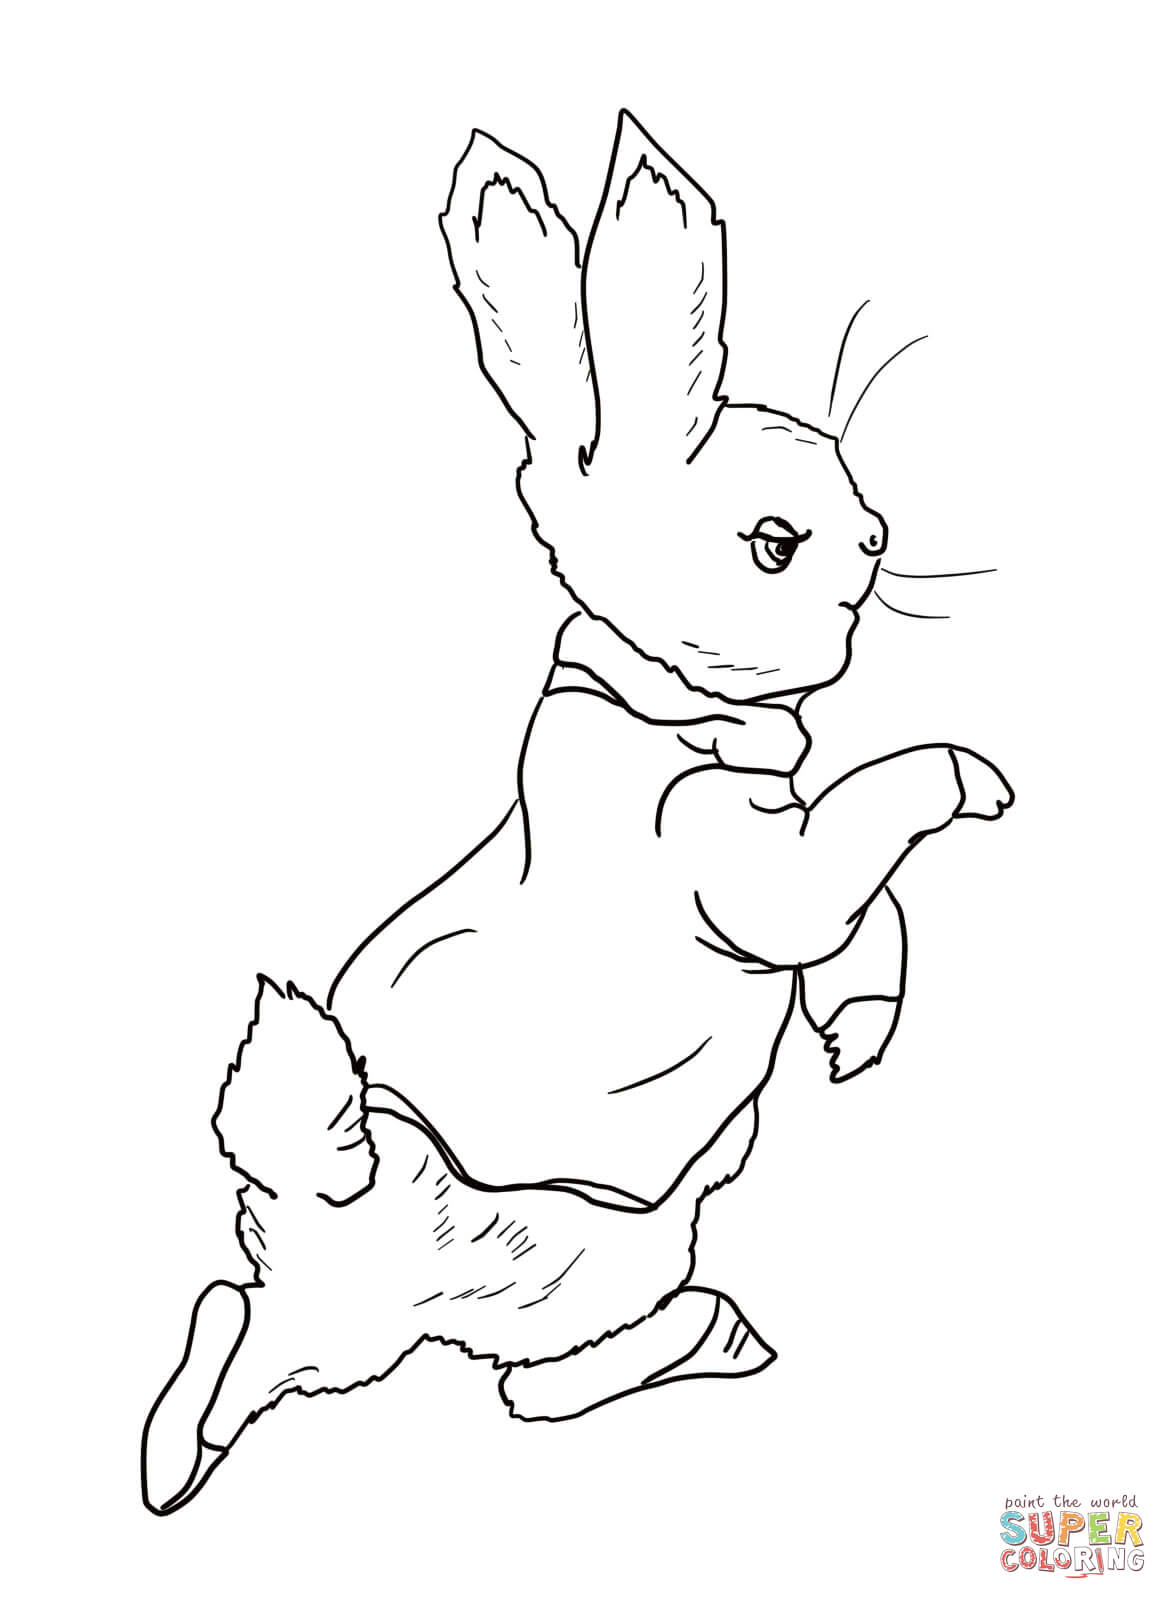 Peter Rabbit Is Going Into The Garden Coloring Page